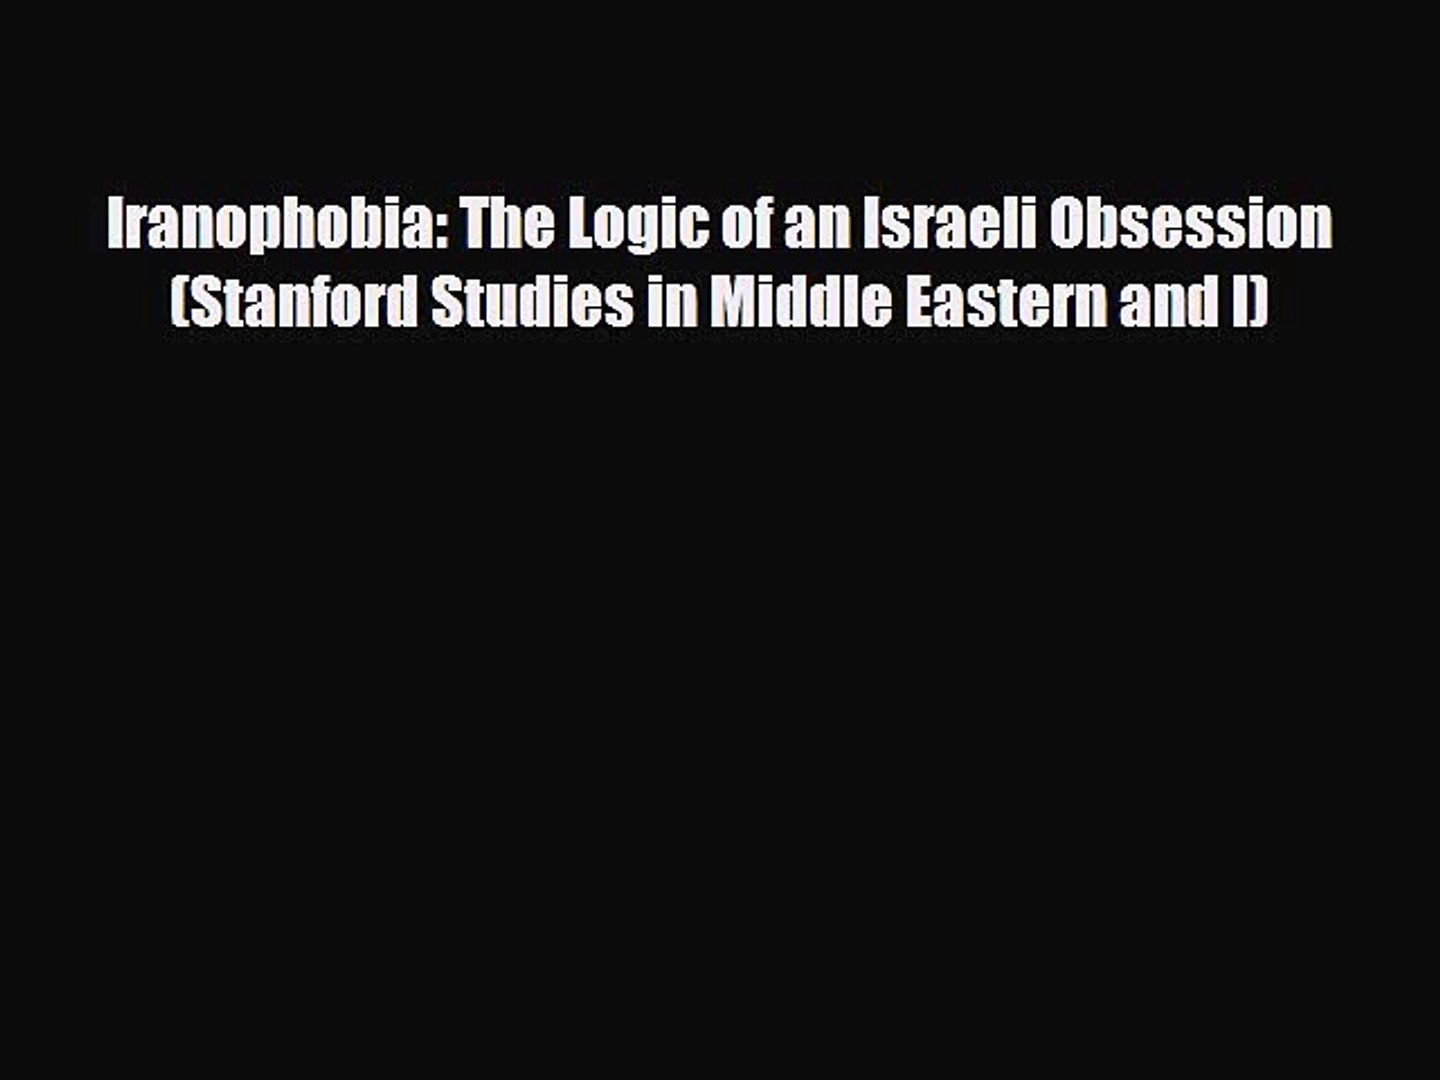 Iranophobia: The Logic of an Israeli Obsession (Stanford Studies in Middle Eastern and I)